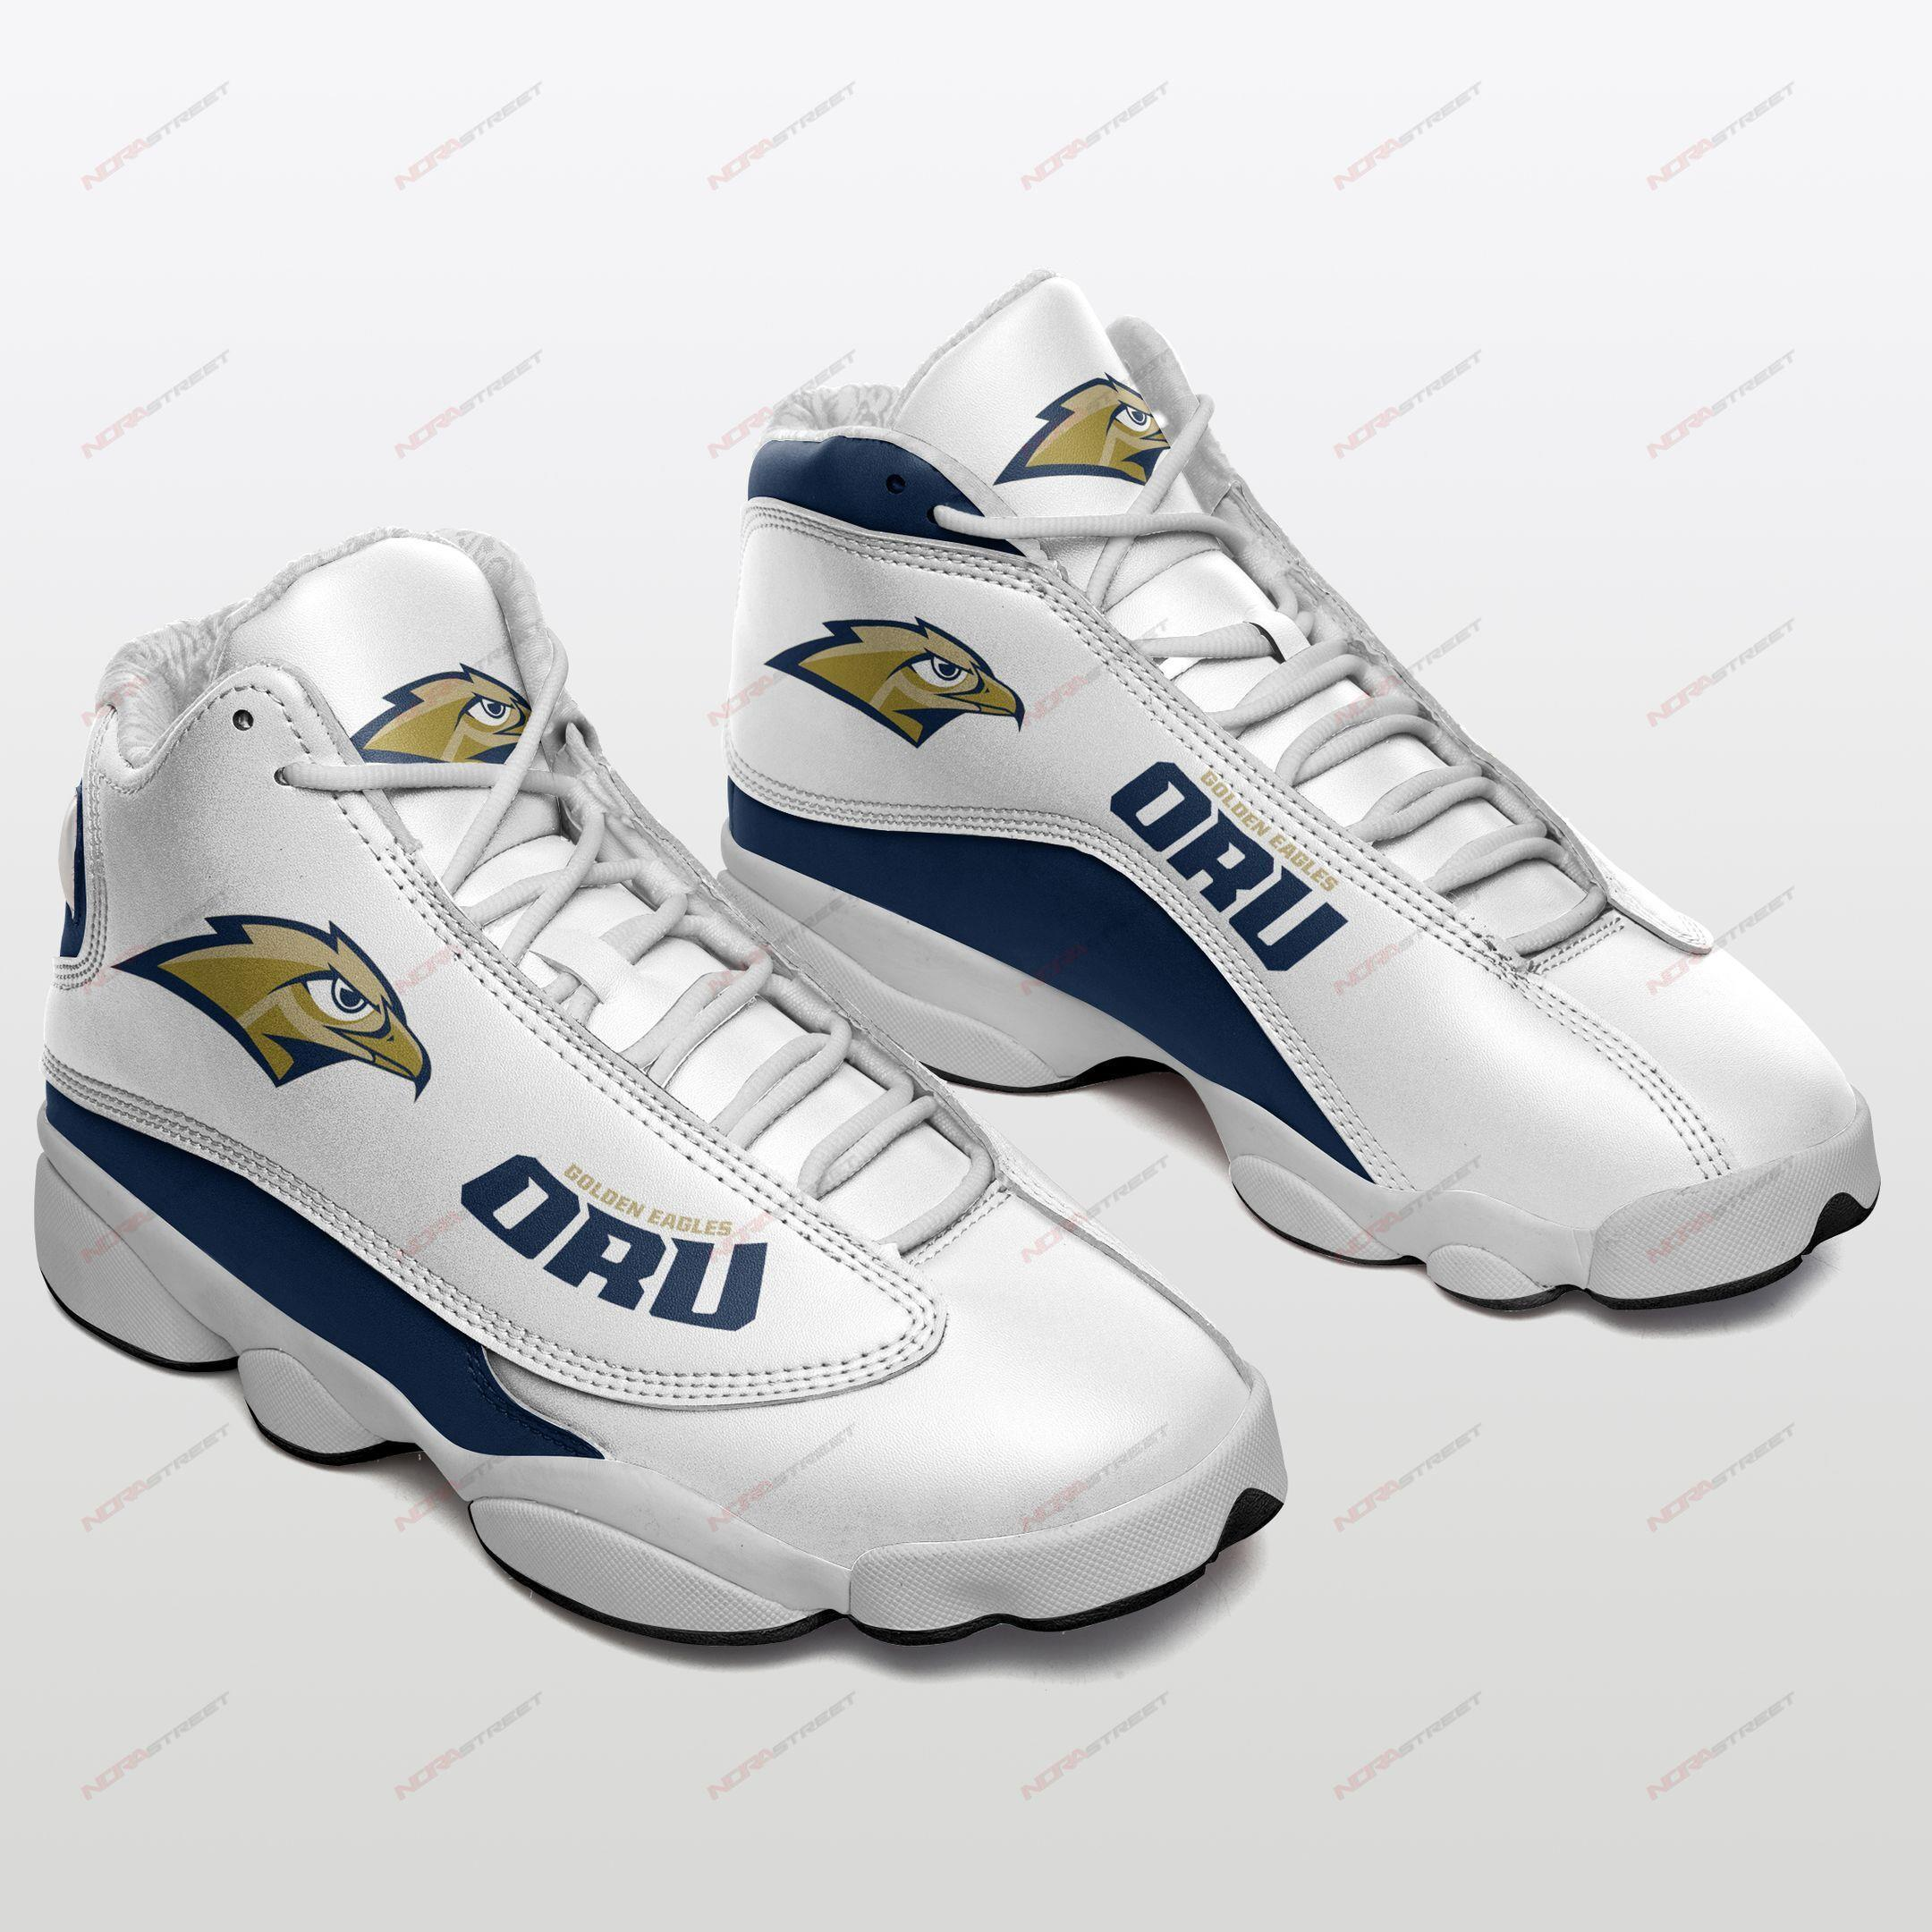 Oral Roberts Golden Eagles Air Jordan 13 Sneakers Sport Shoes Full Size